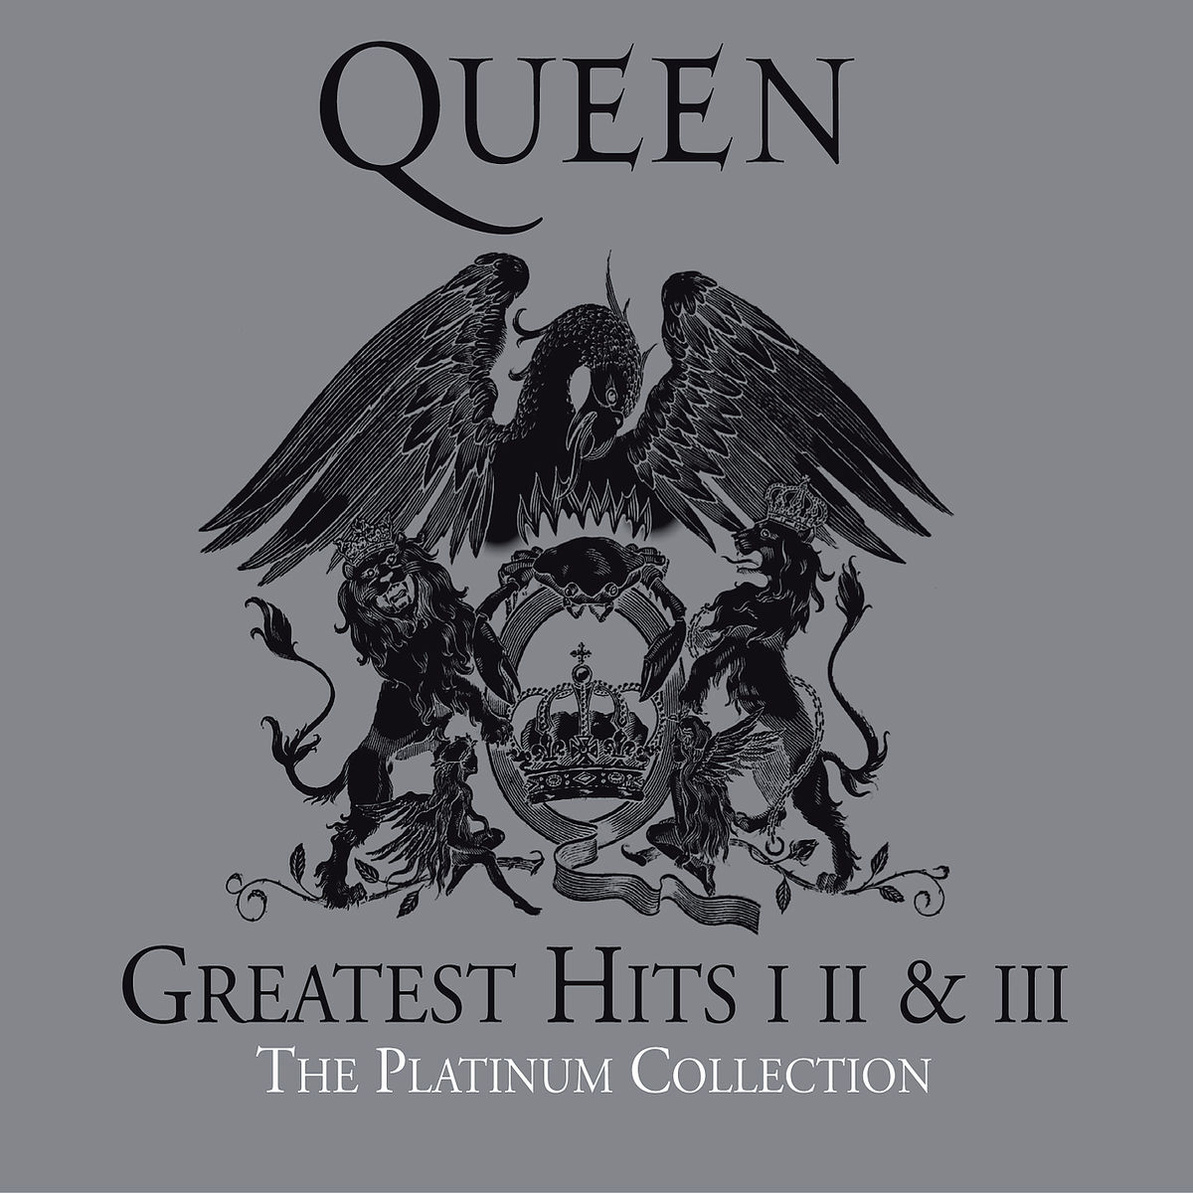 Queen - The Platinum Collection (2011 Remastered)